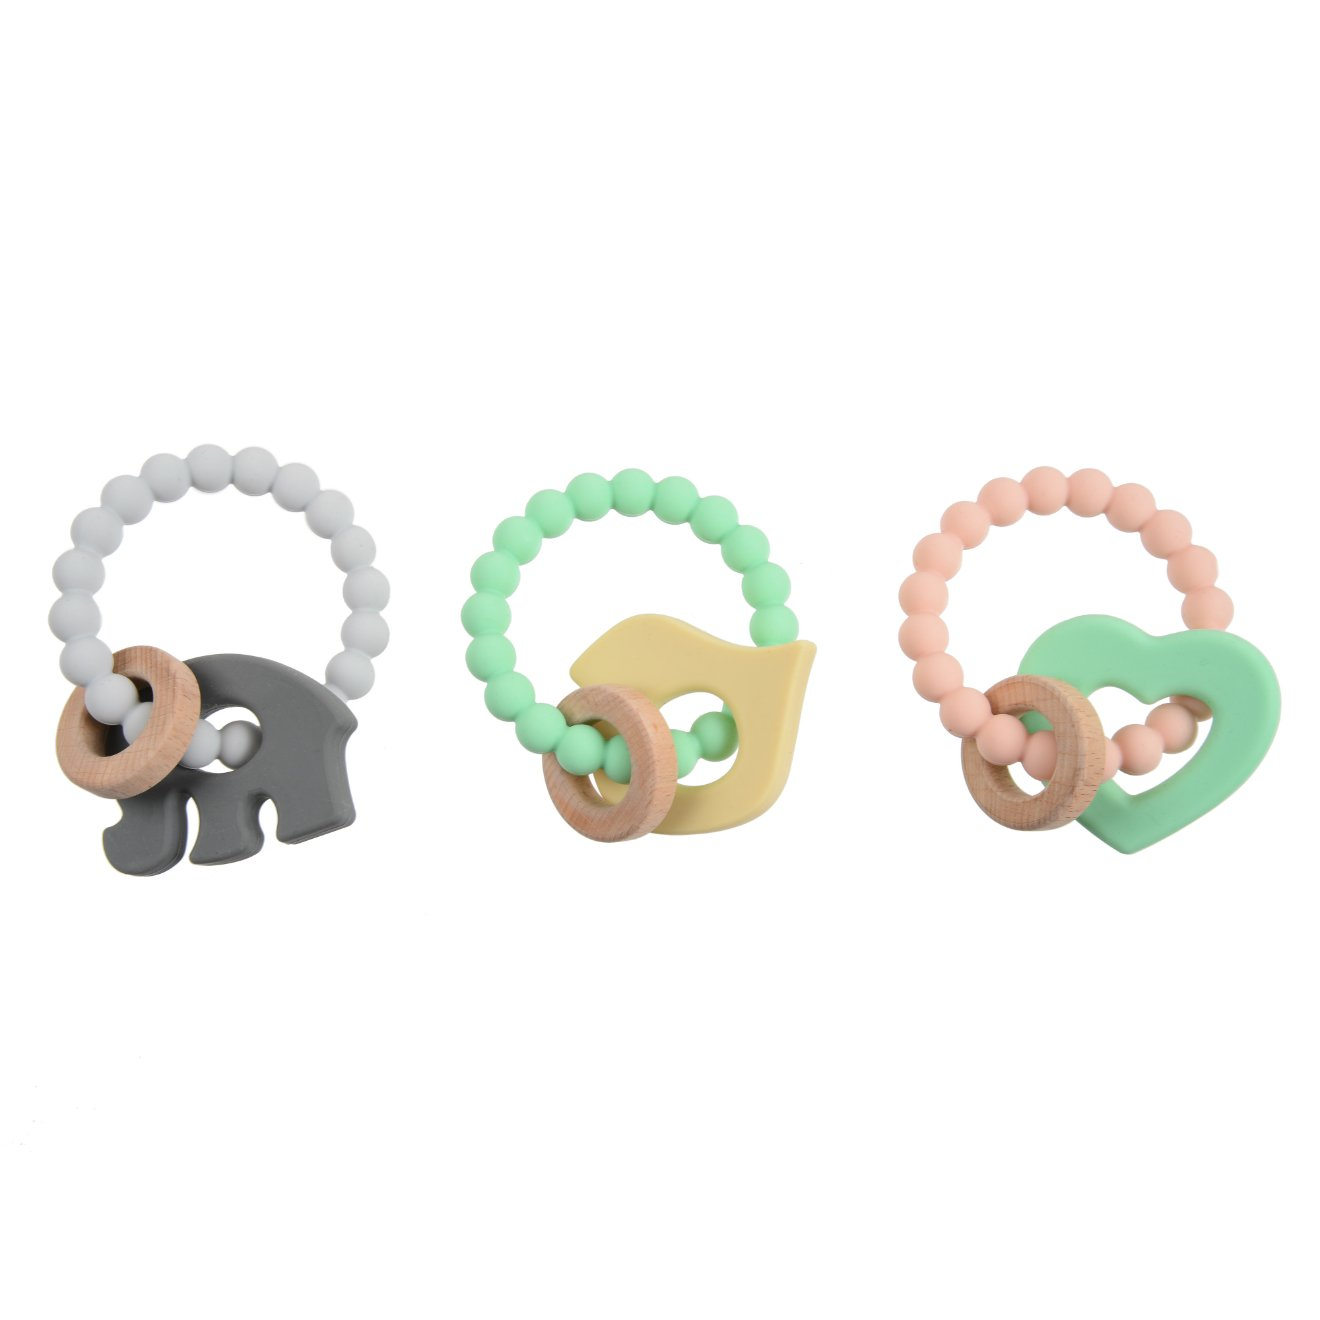 Chewbeads - Brooklyn Teether Baby Teething Toy (Baby Elephant). 100% Infant Safe Chewable Silicone and Wood Teething Ring for Soothing Gums and Easing Pain from Emerging Teeth. BPA Free